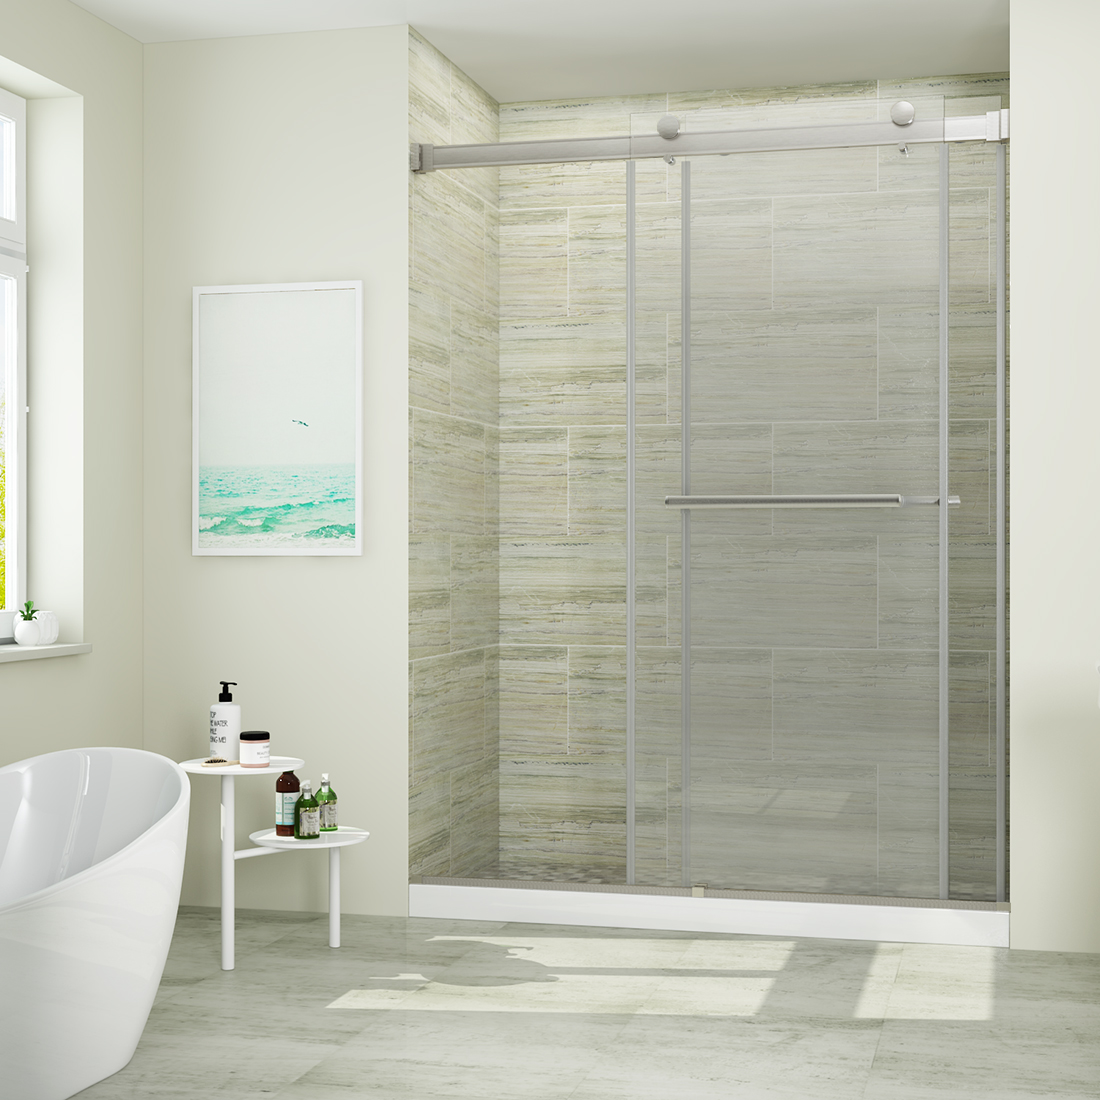 Sunny Shower 60 W X 79 H Sliding Shower Door 5 16 Clear Glass Brushed Nickel Finish